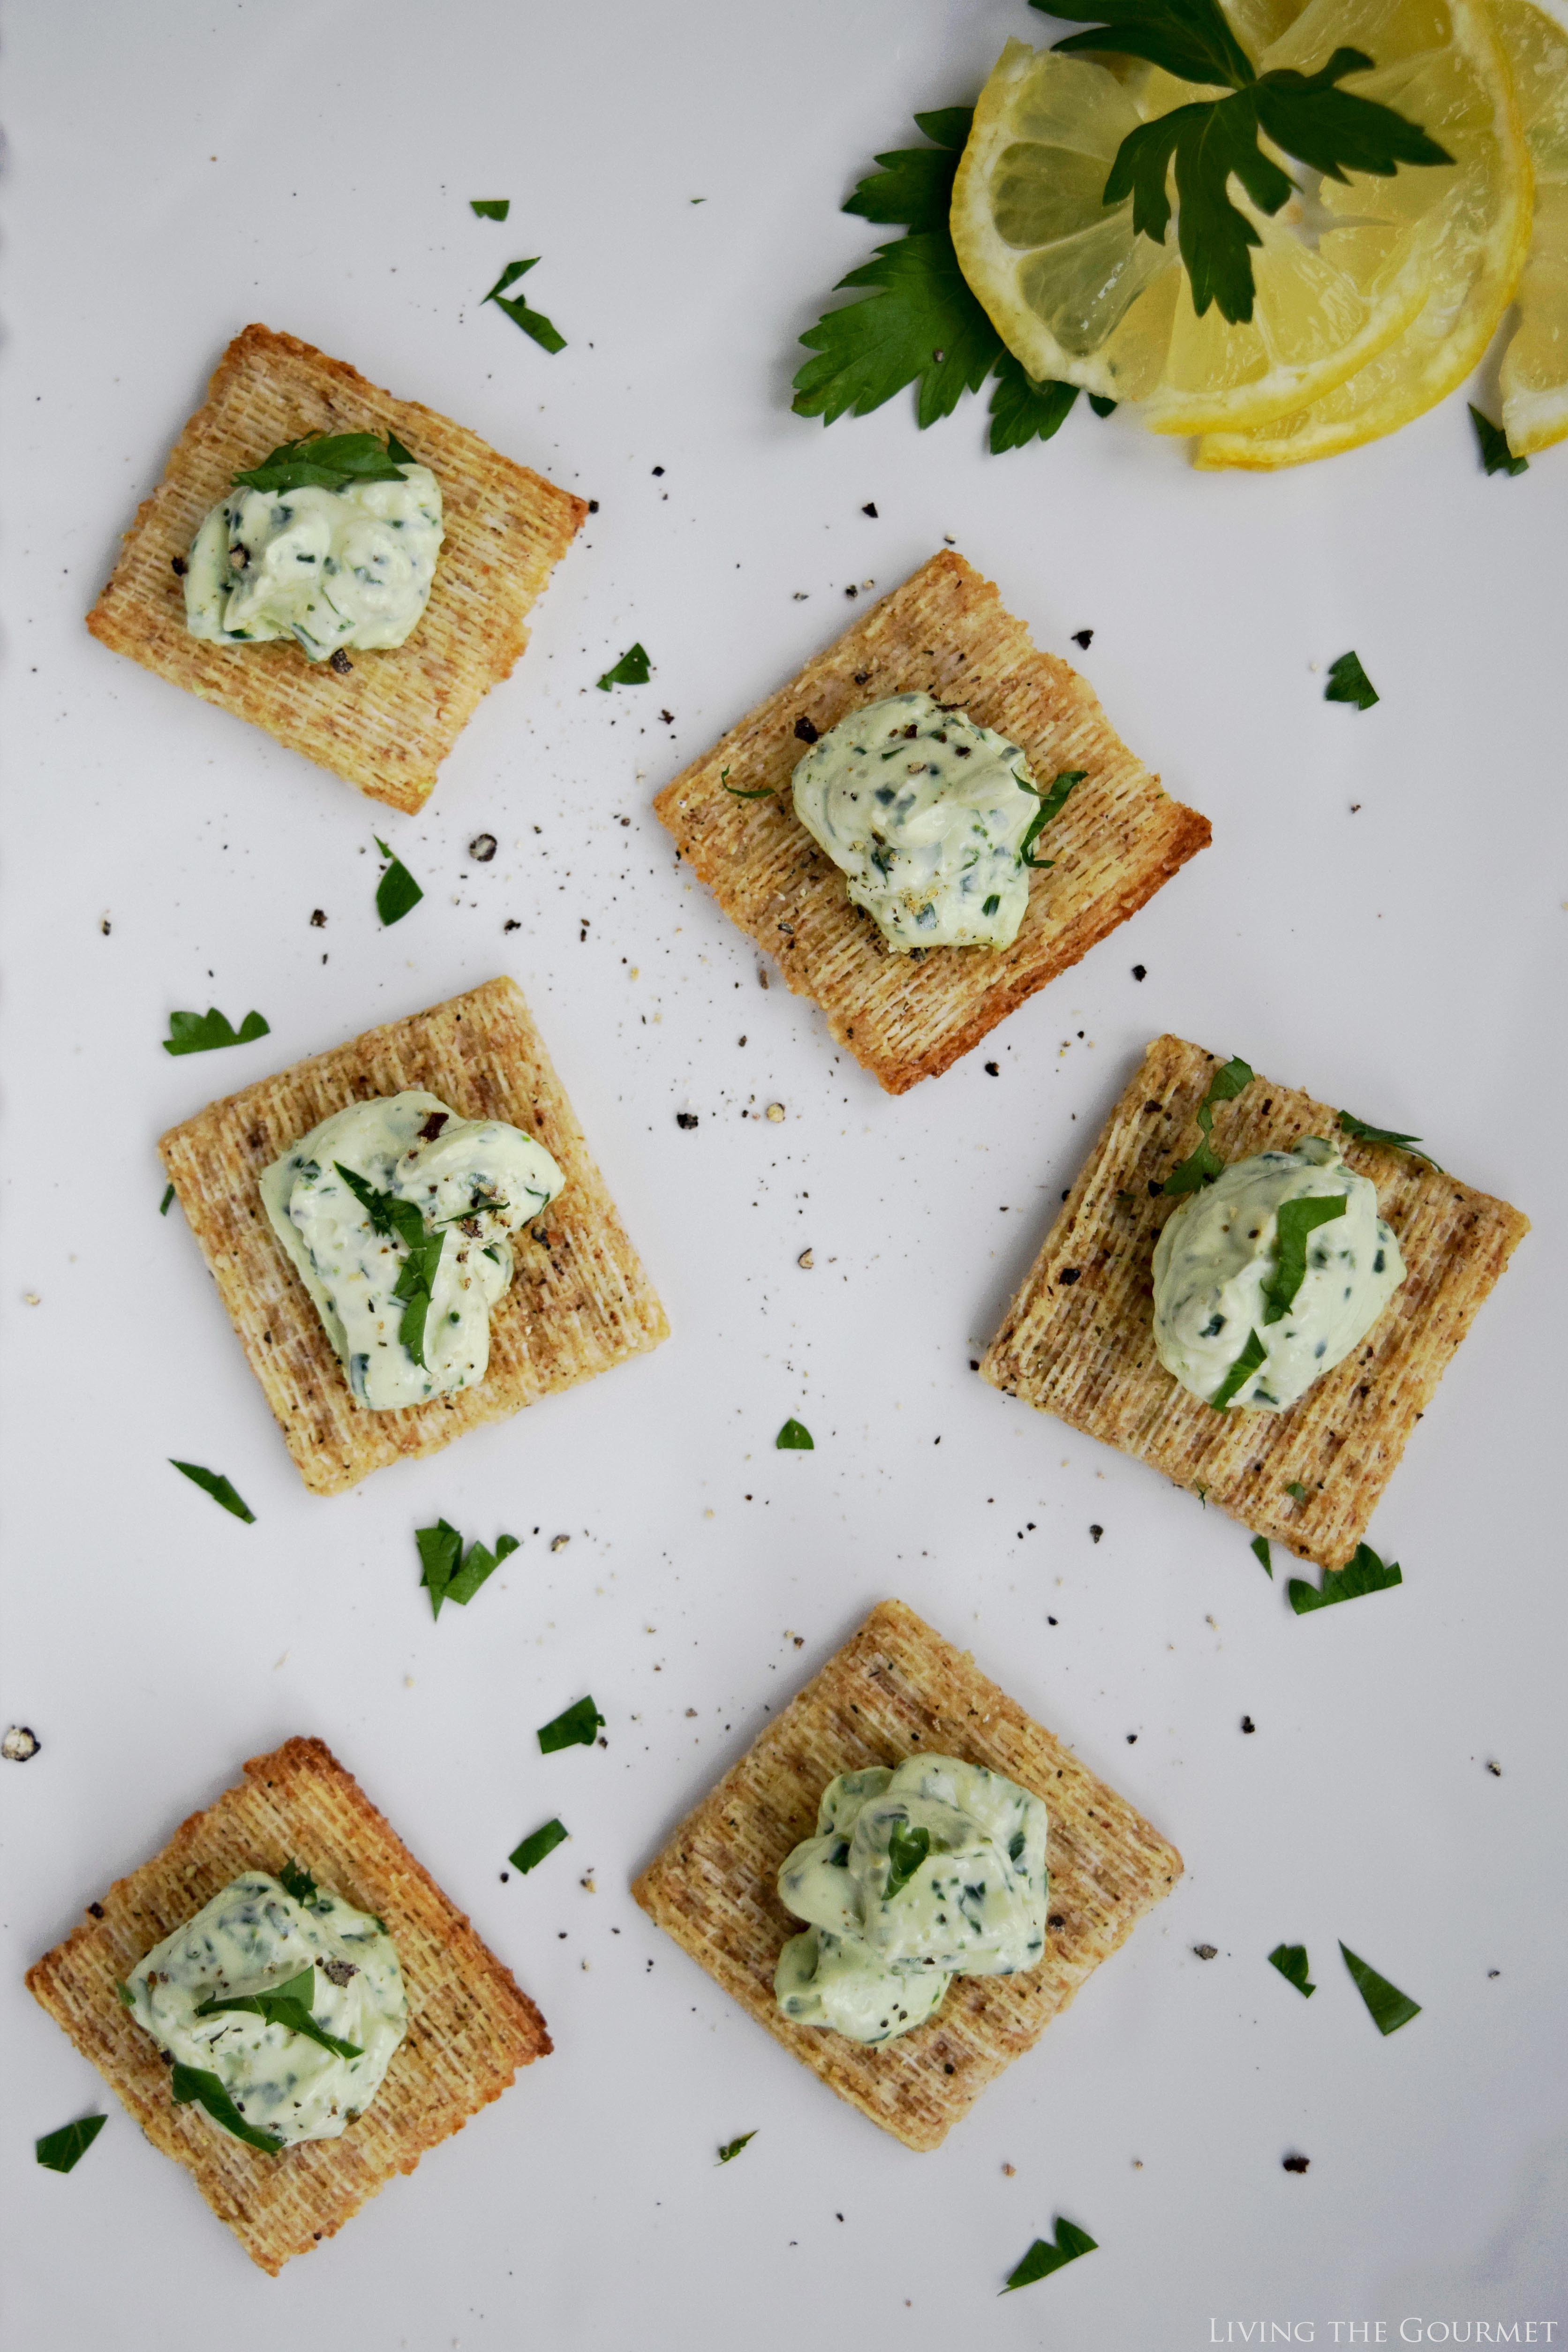 Living the Gourmet: Fresh Cream Cheese Gremolata Hors D'oeuvres | #MadeForMore #Walmart